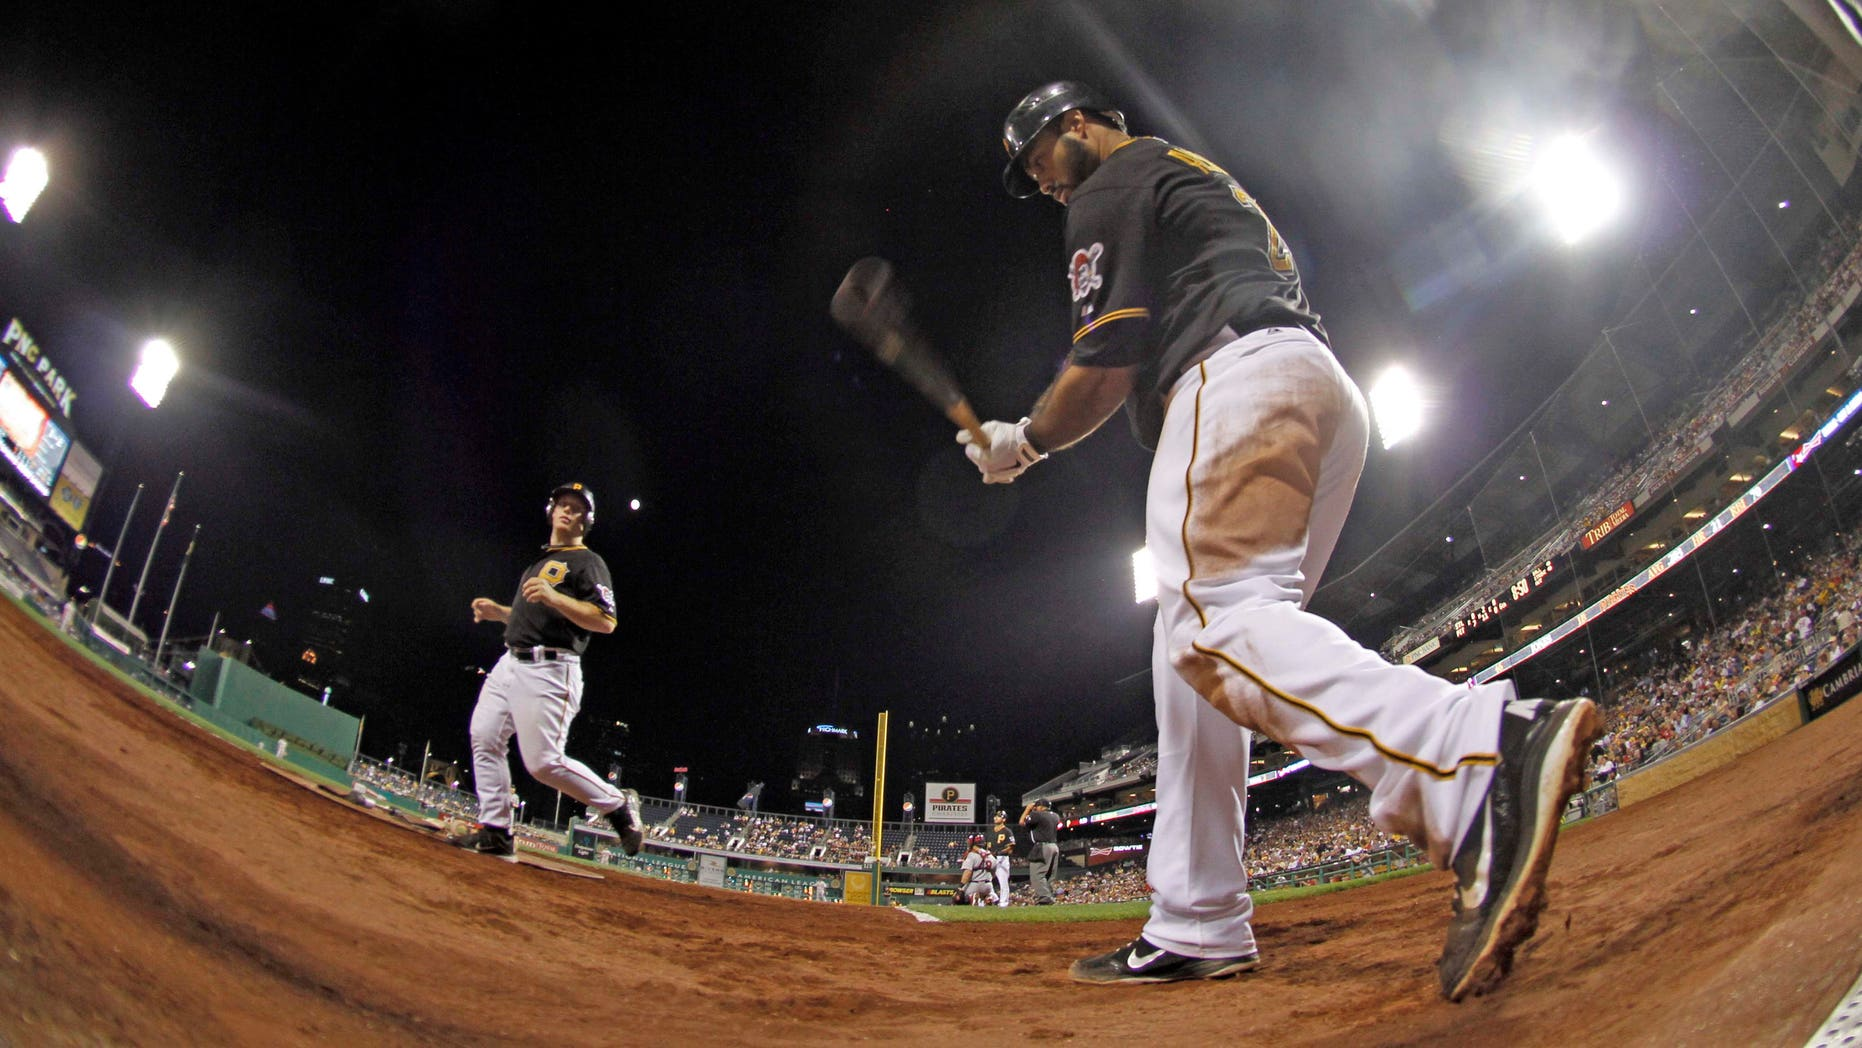 In this photo made with a fisheye lens, Pittsburgh Pirates' Pedro Alvarez, right, warms up on deck before batting in the sixth inning of the baseball game against the St. Louis Cardinals on Tuesday, Aug. 28, 2012, in Pittsburgh. Alvarez hit his second homer of the night in the subsequent at bat as the Pirates won 9-0. (AP Photo/Keith Srakocic)